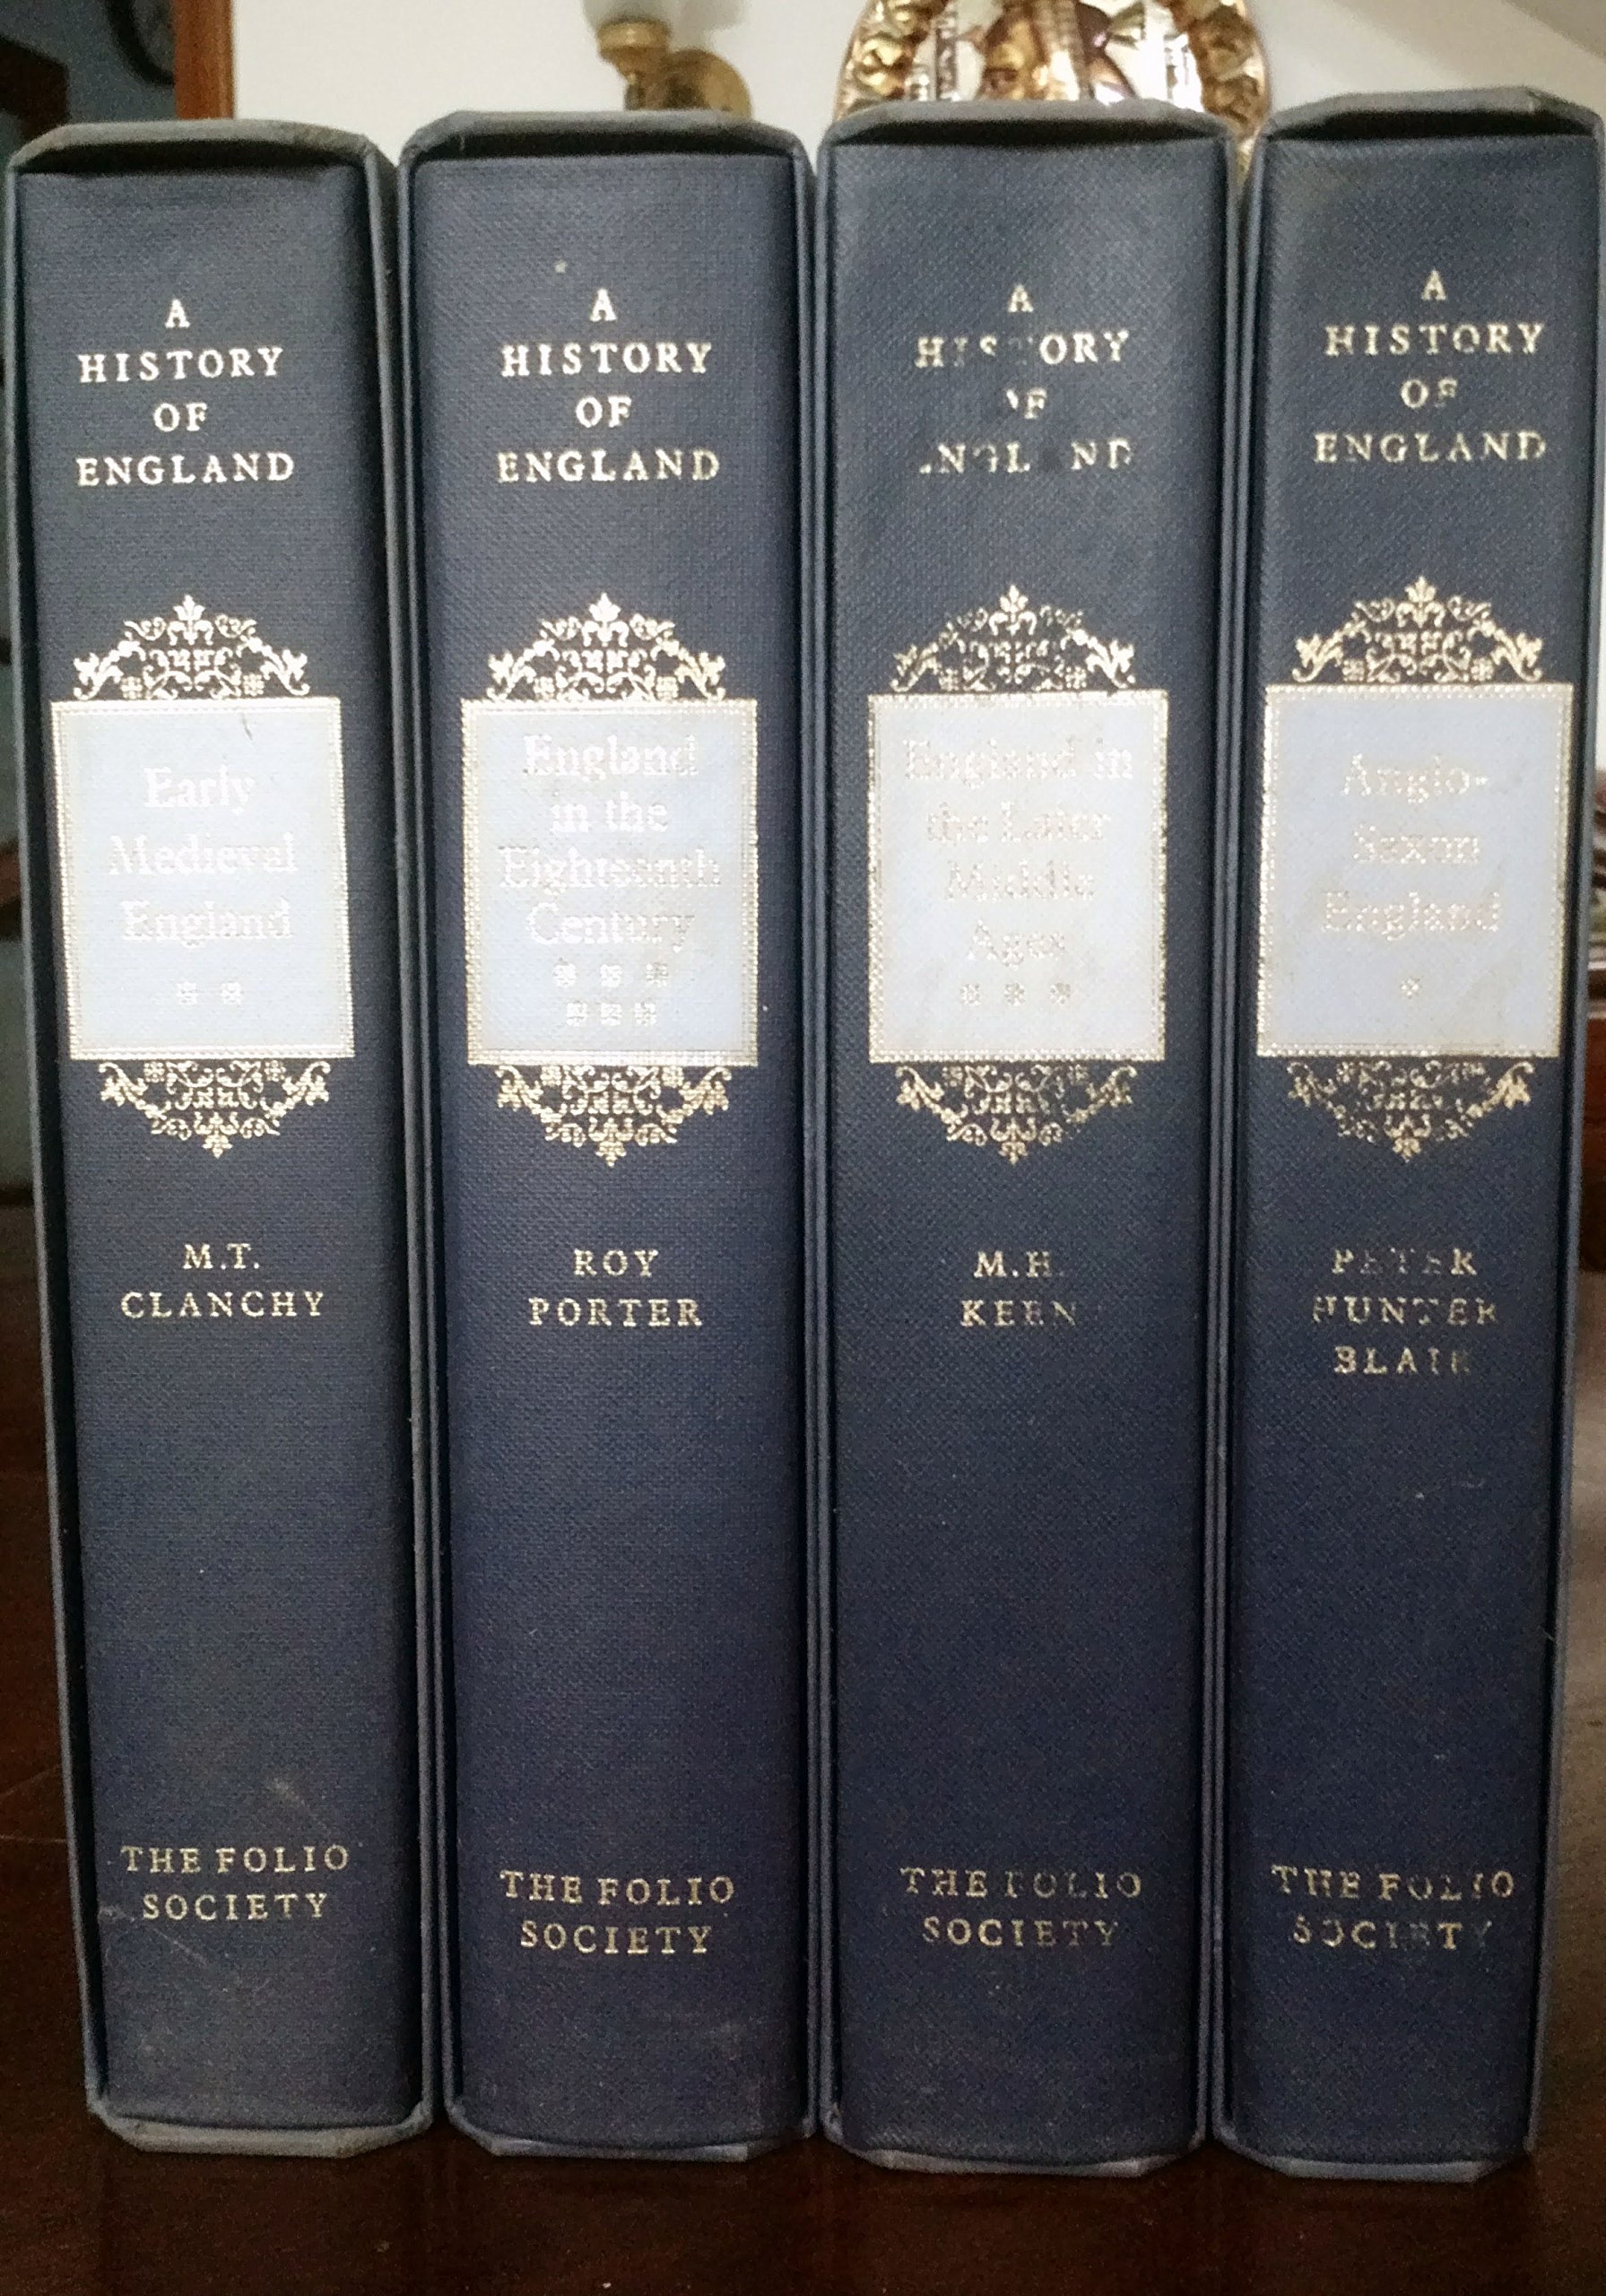 A History of England (Complete Set of the 12-volume Folio Society Series) (Volumes I - XII) PDF